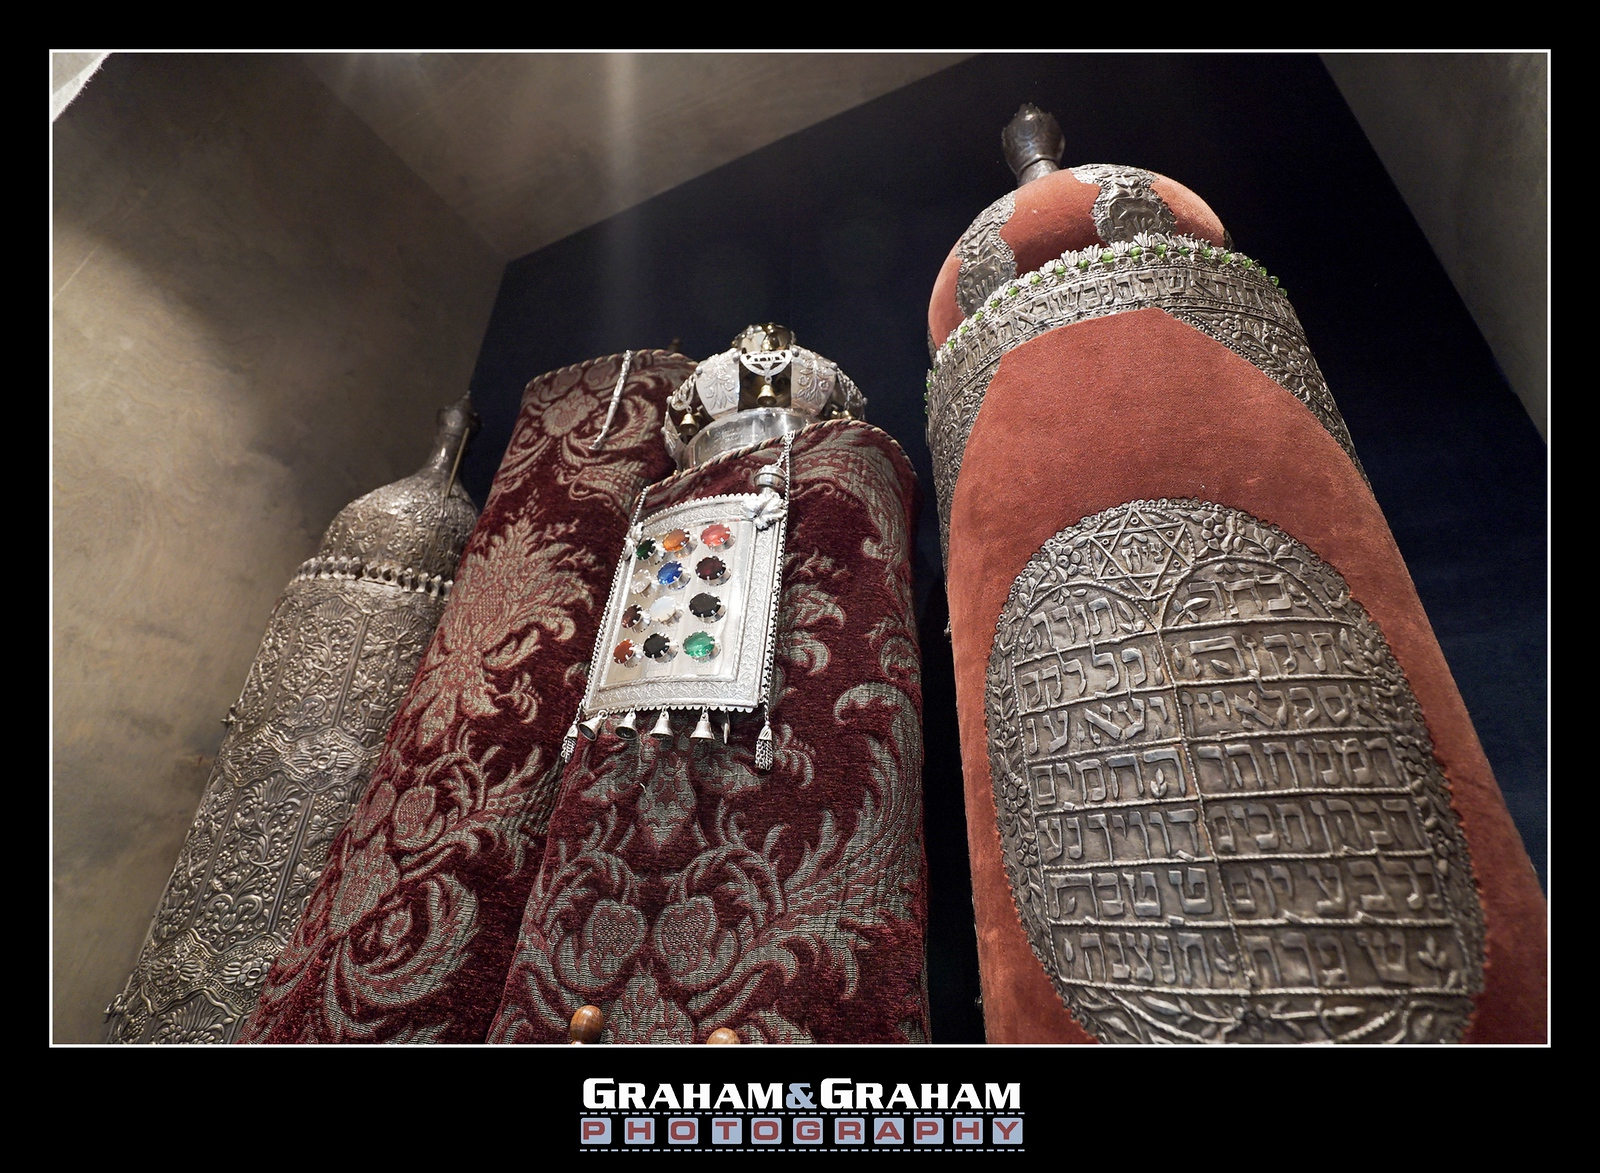 Historic torahs at Temple Israel of Hollywood, Los Angeles, by Graham and Graham Photography